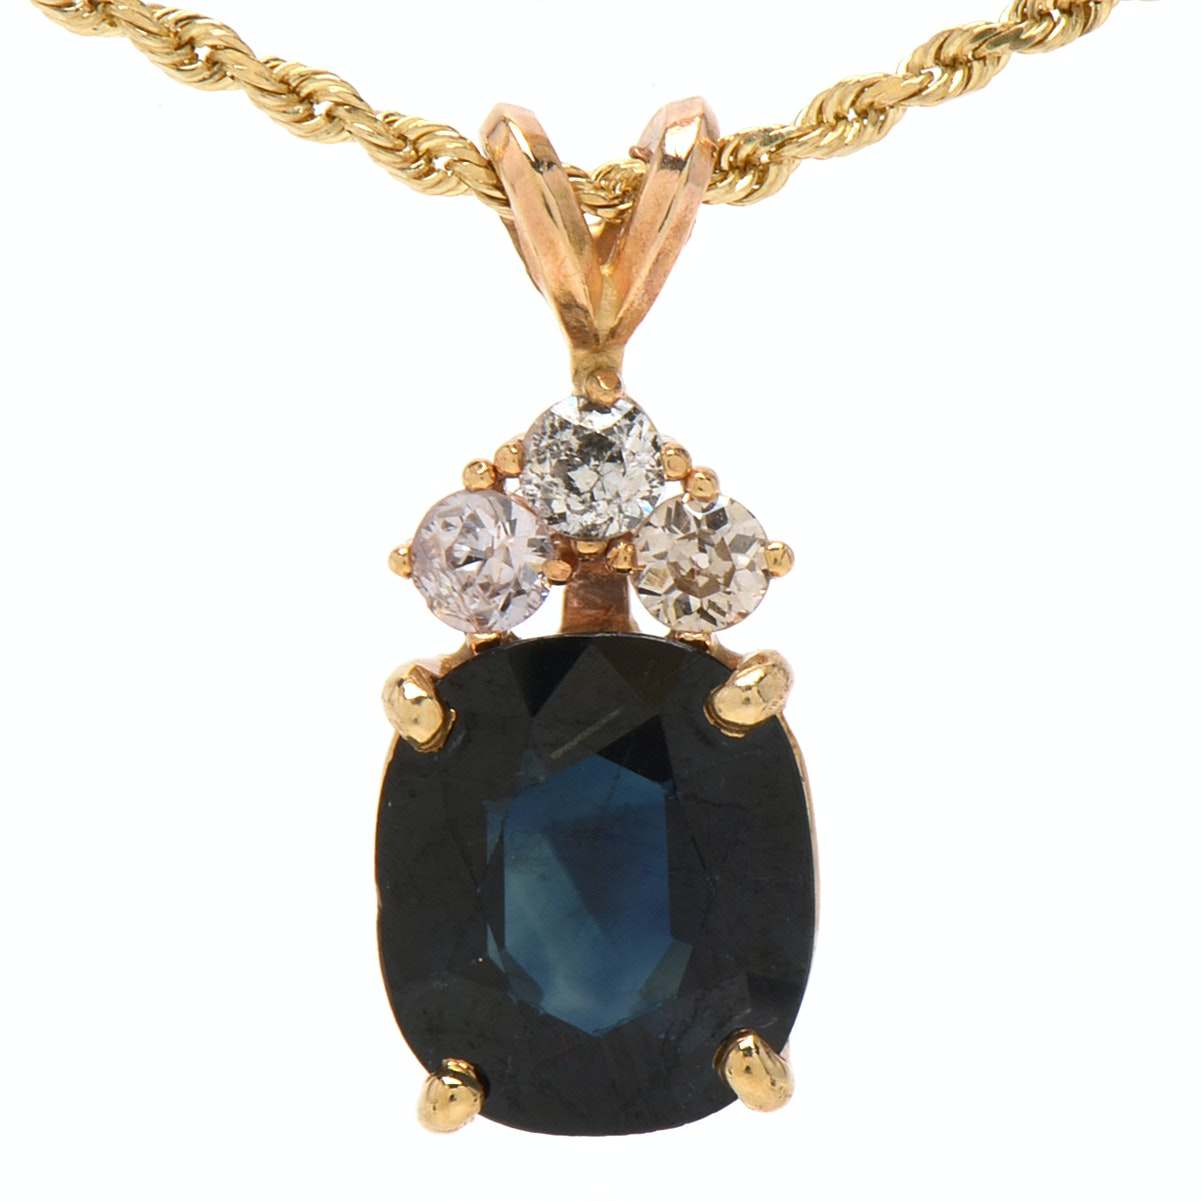 14K Yellow Gold 4.01 Carat Blue Sapphire and Diamond Pendant Necklace